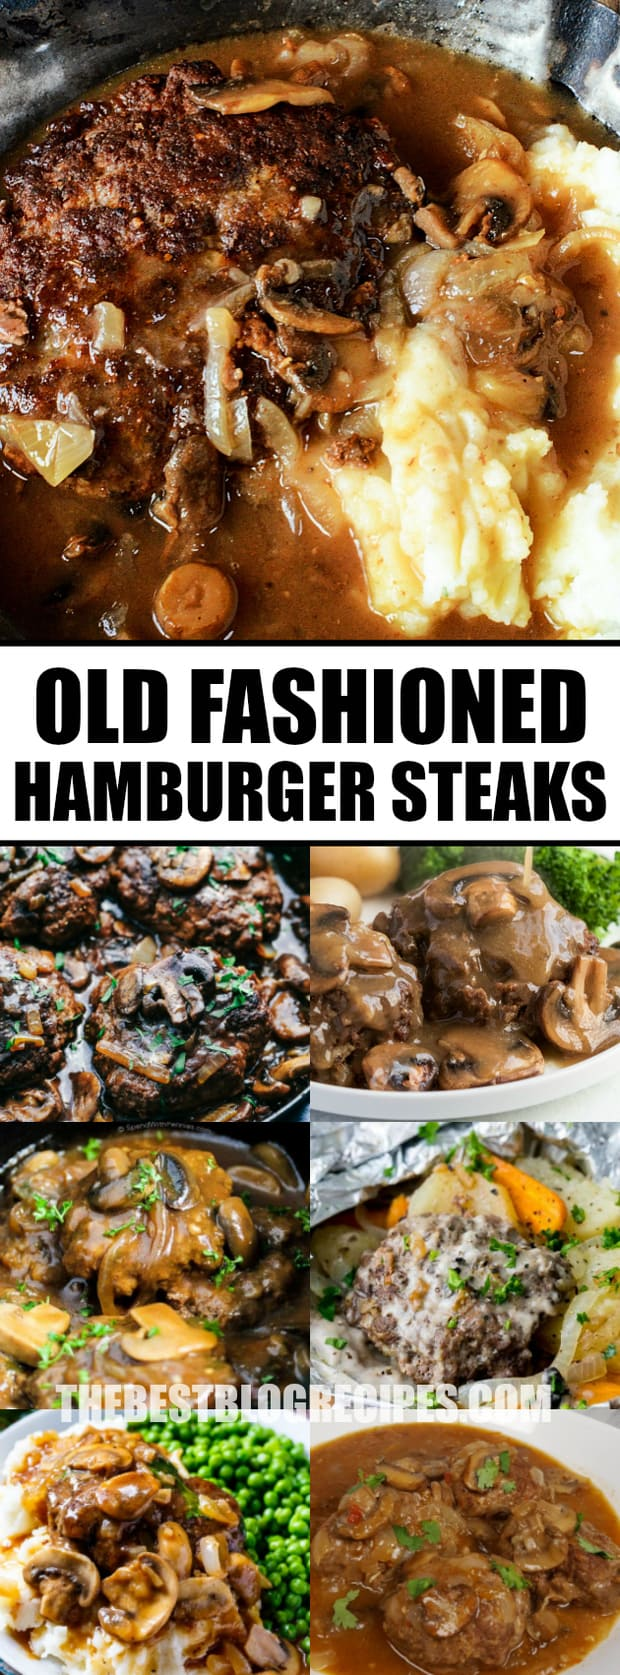 Old Fashioned Hamburger Steaks with Mushroom Onion Gravy